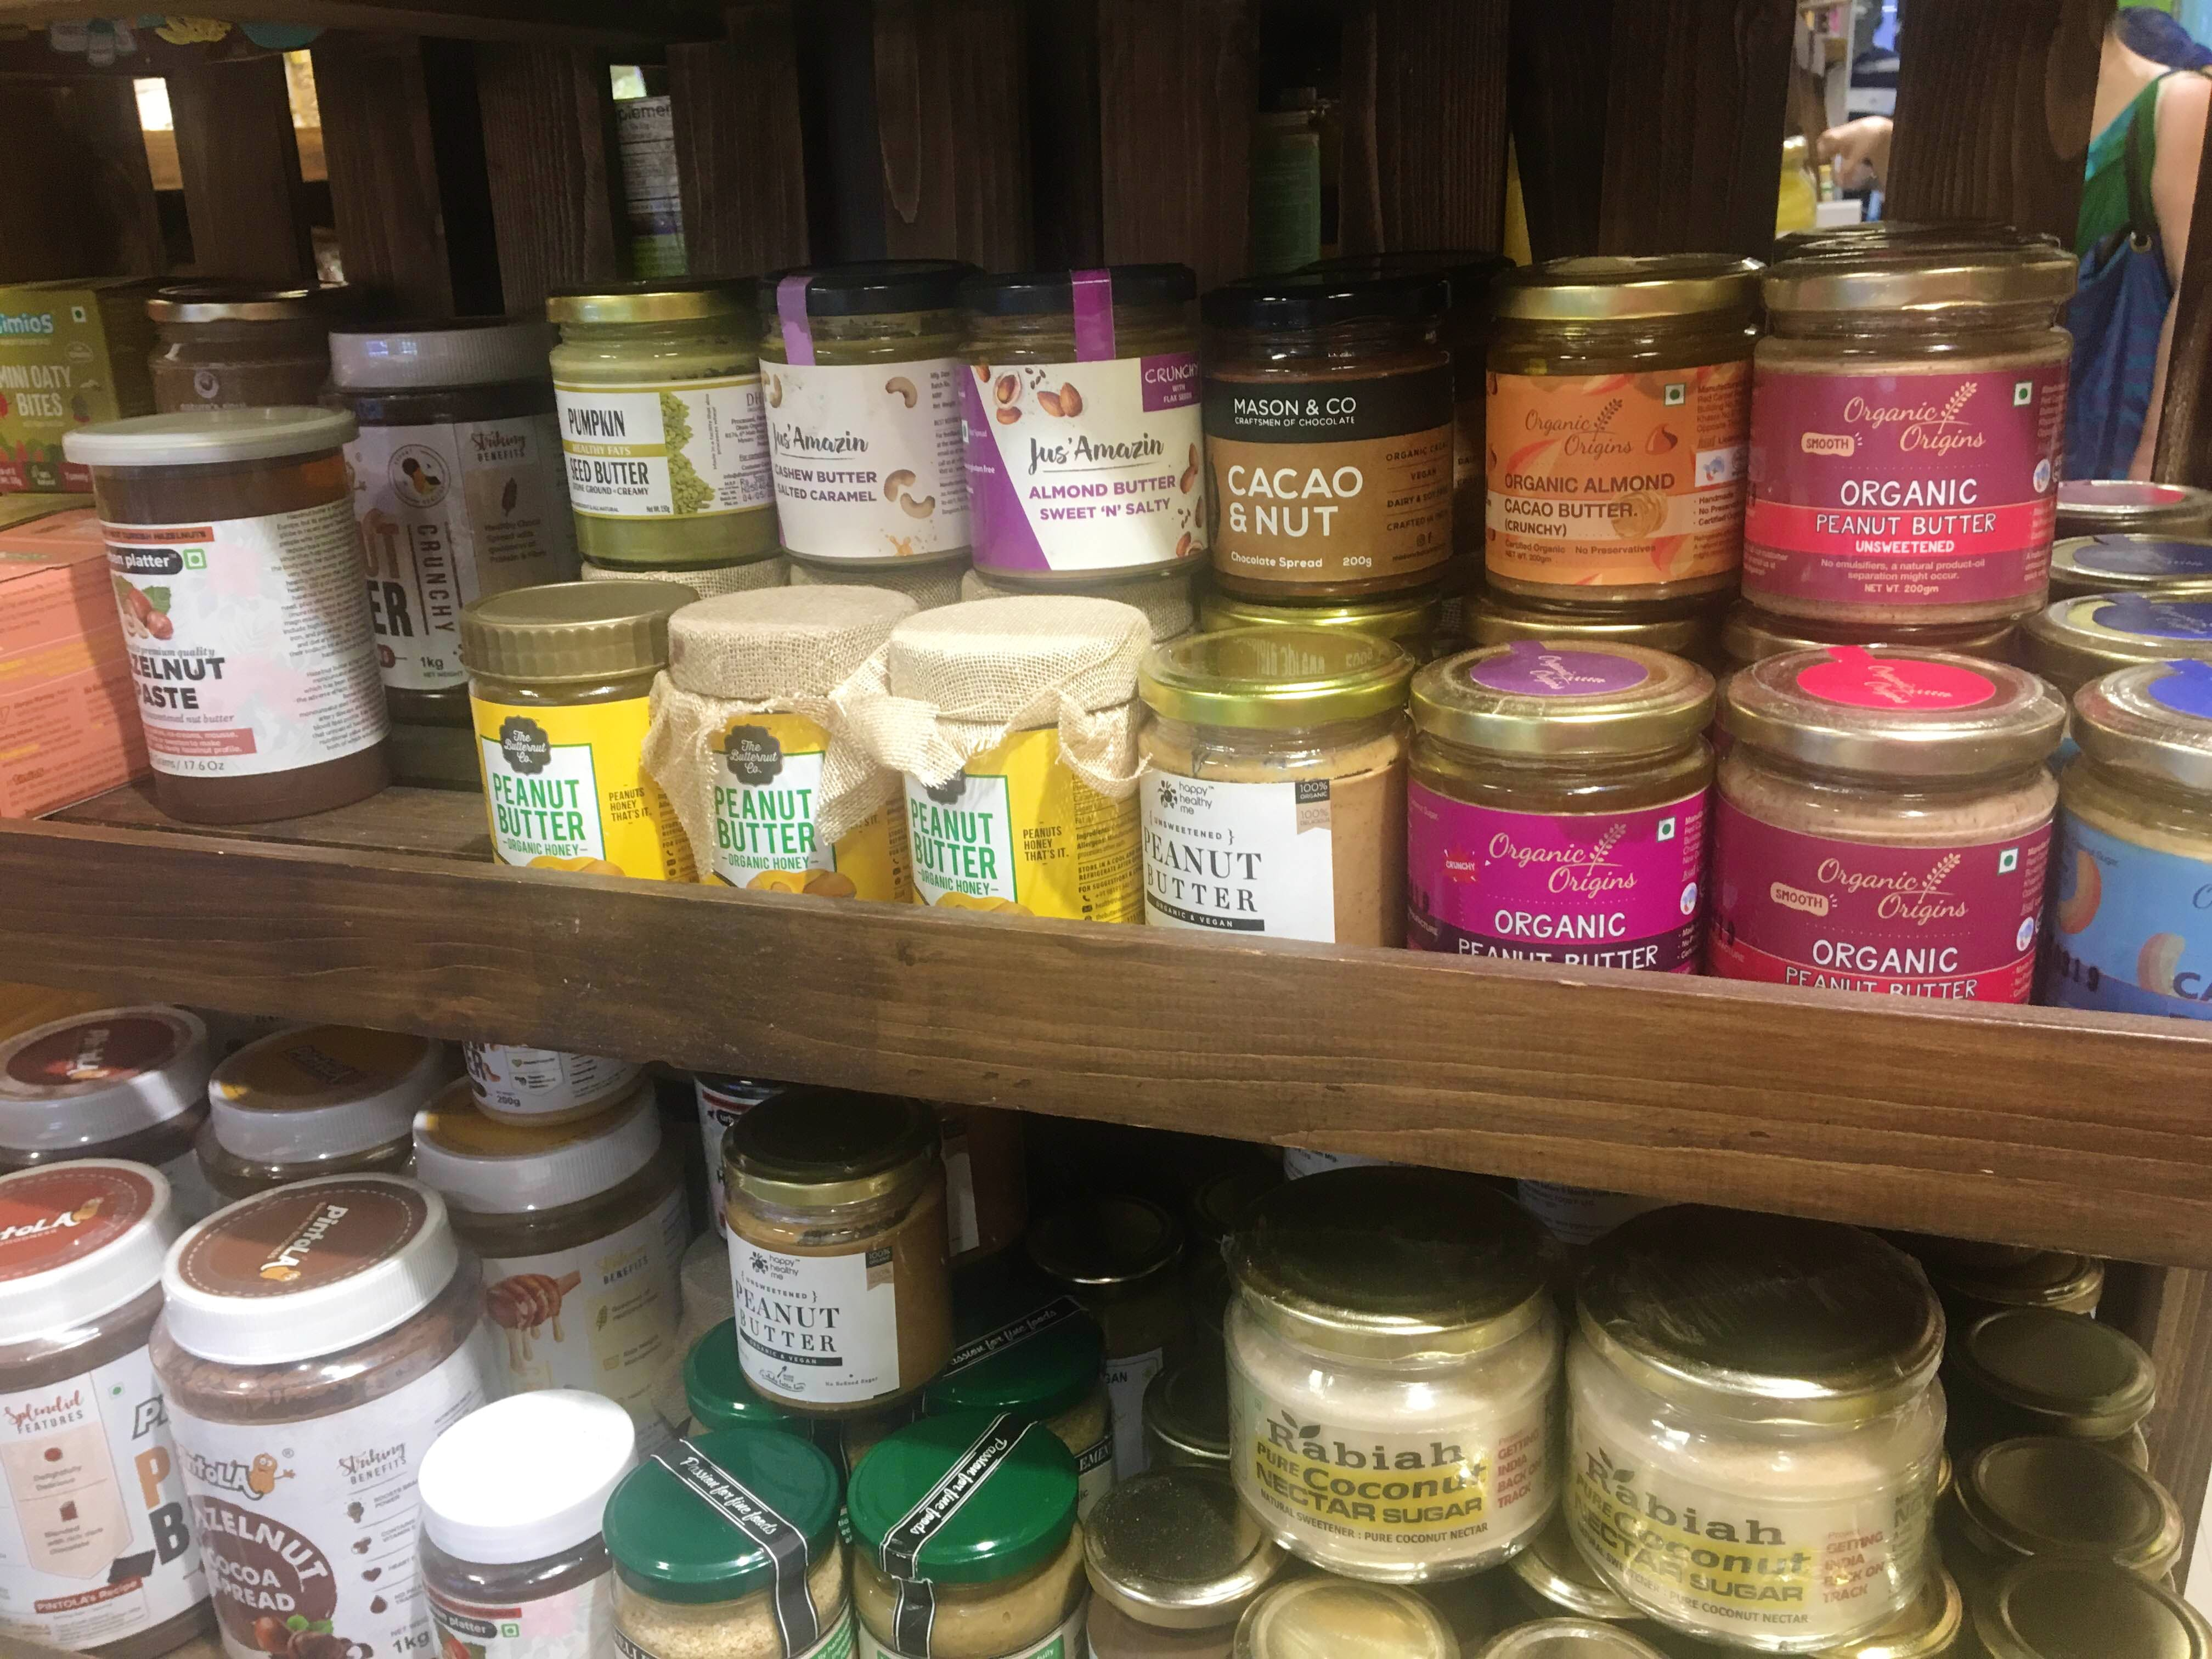 Product,Canning,Mason jar,Preserved food,Pickling,Spice rack